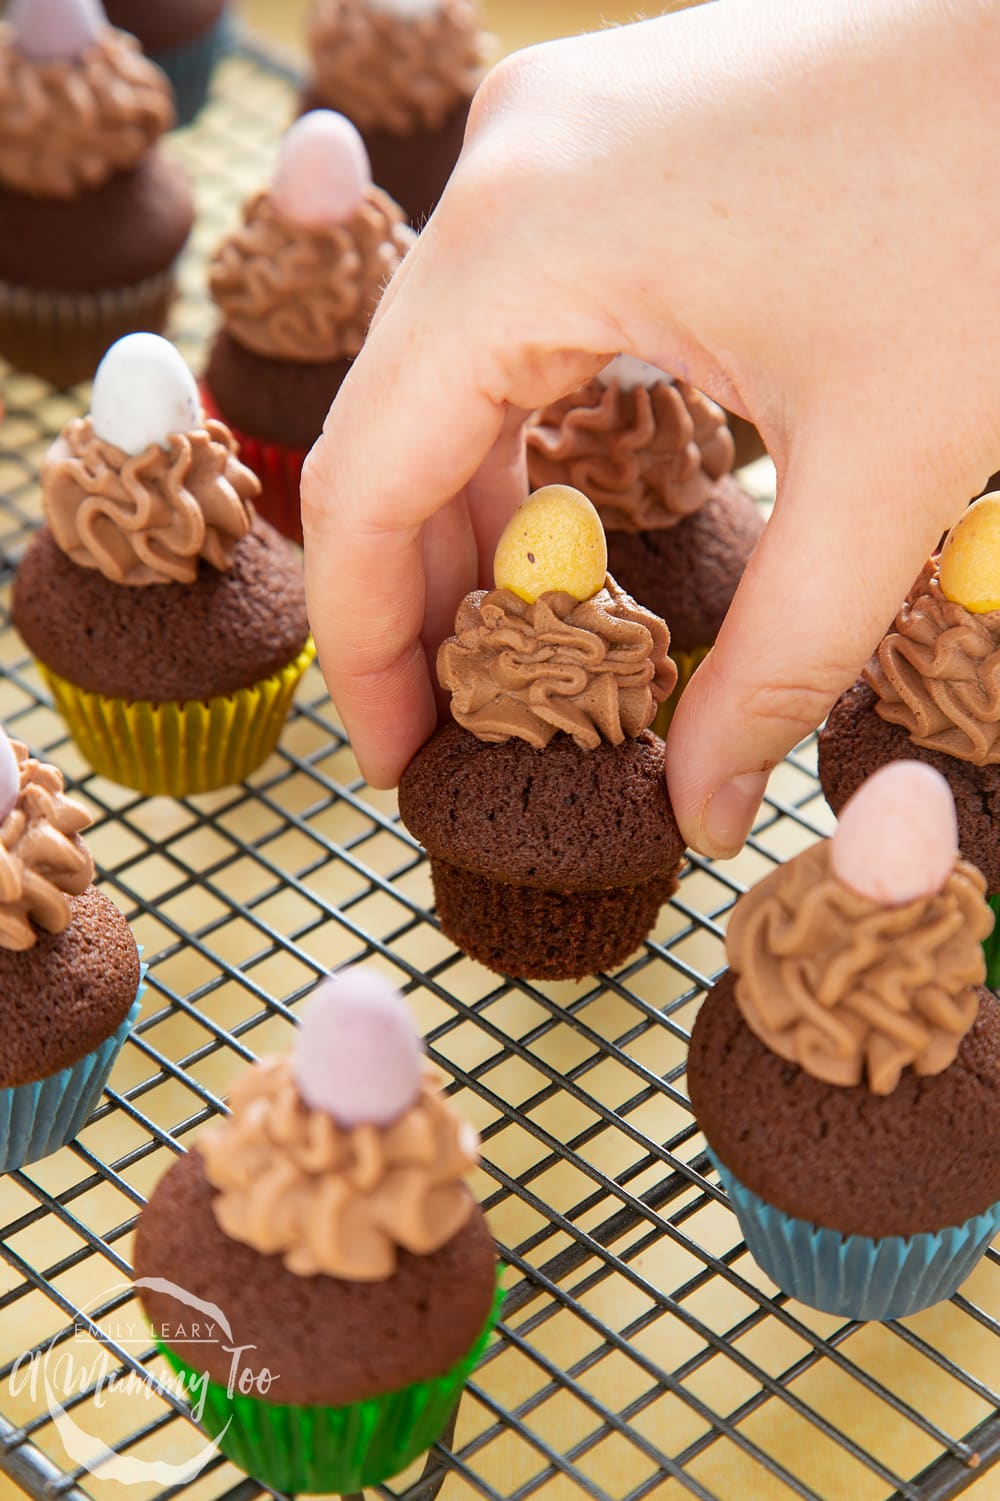 front angle shot of a hand holding a chocolate muffin topped with chocolate frosting on a baking rack with a mummy too logo in the lower-left corner